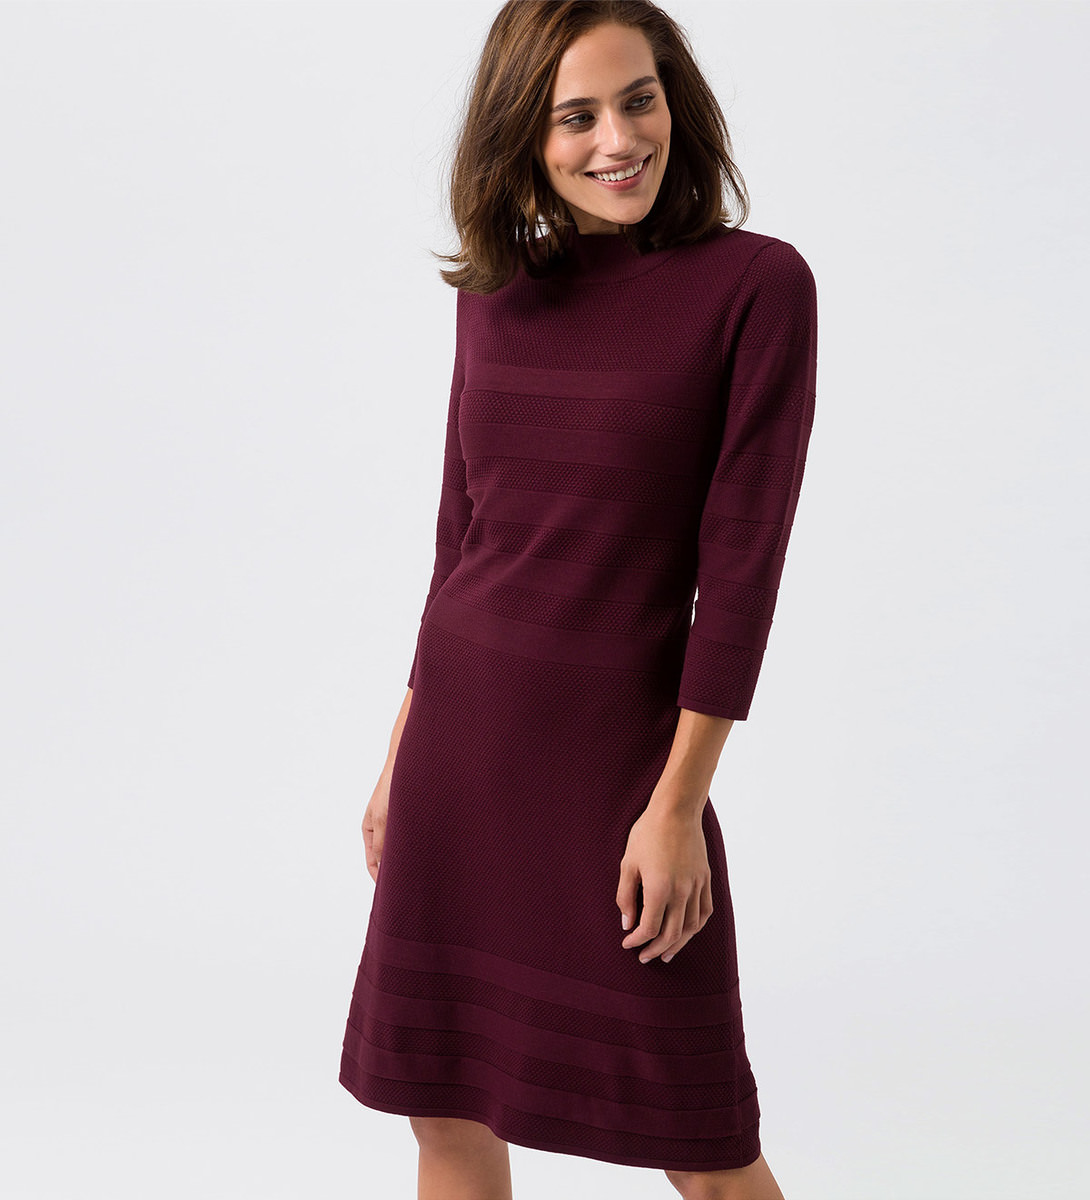 Kleid mit gestreifter Strickstruktur in grape red